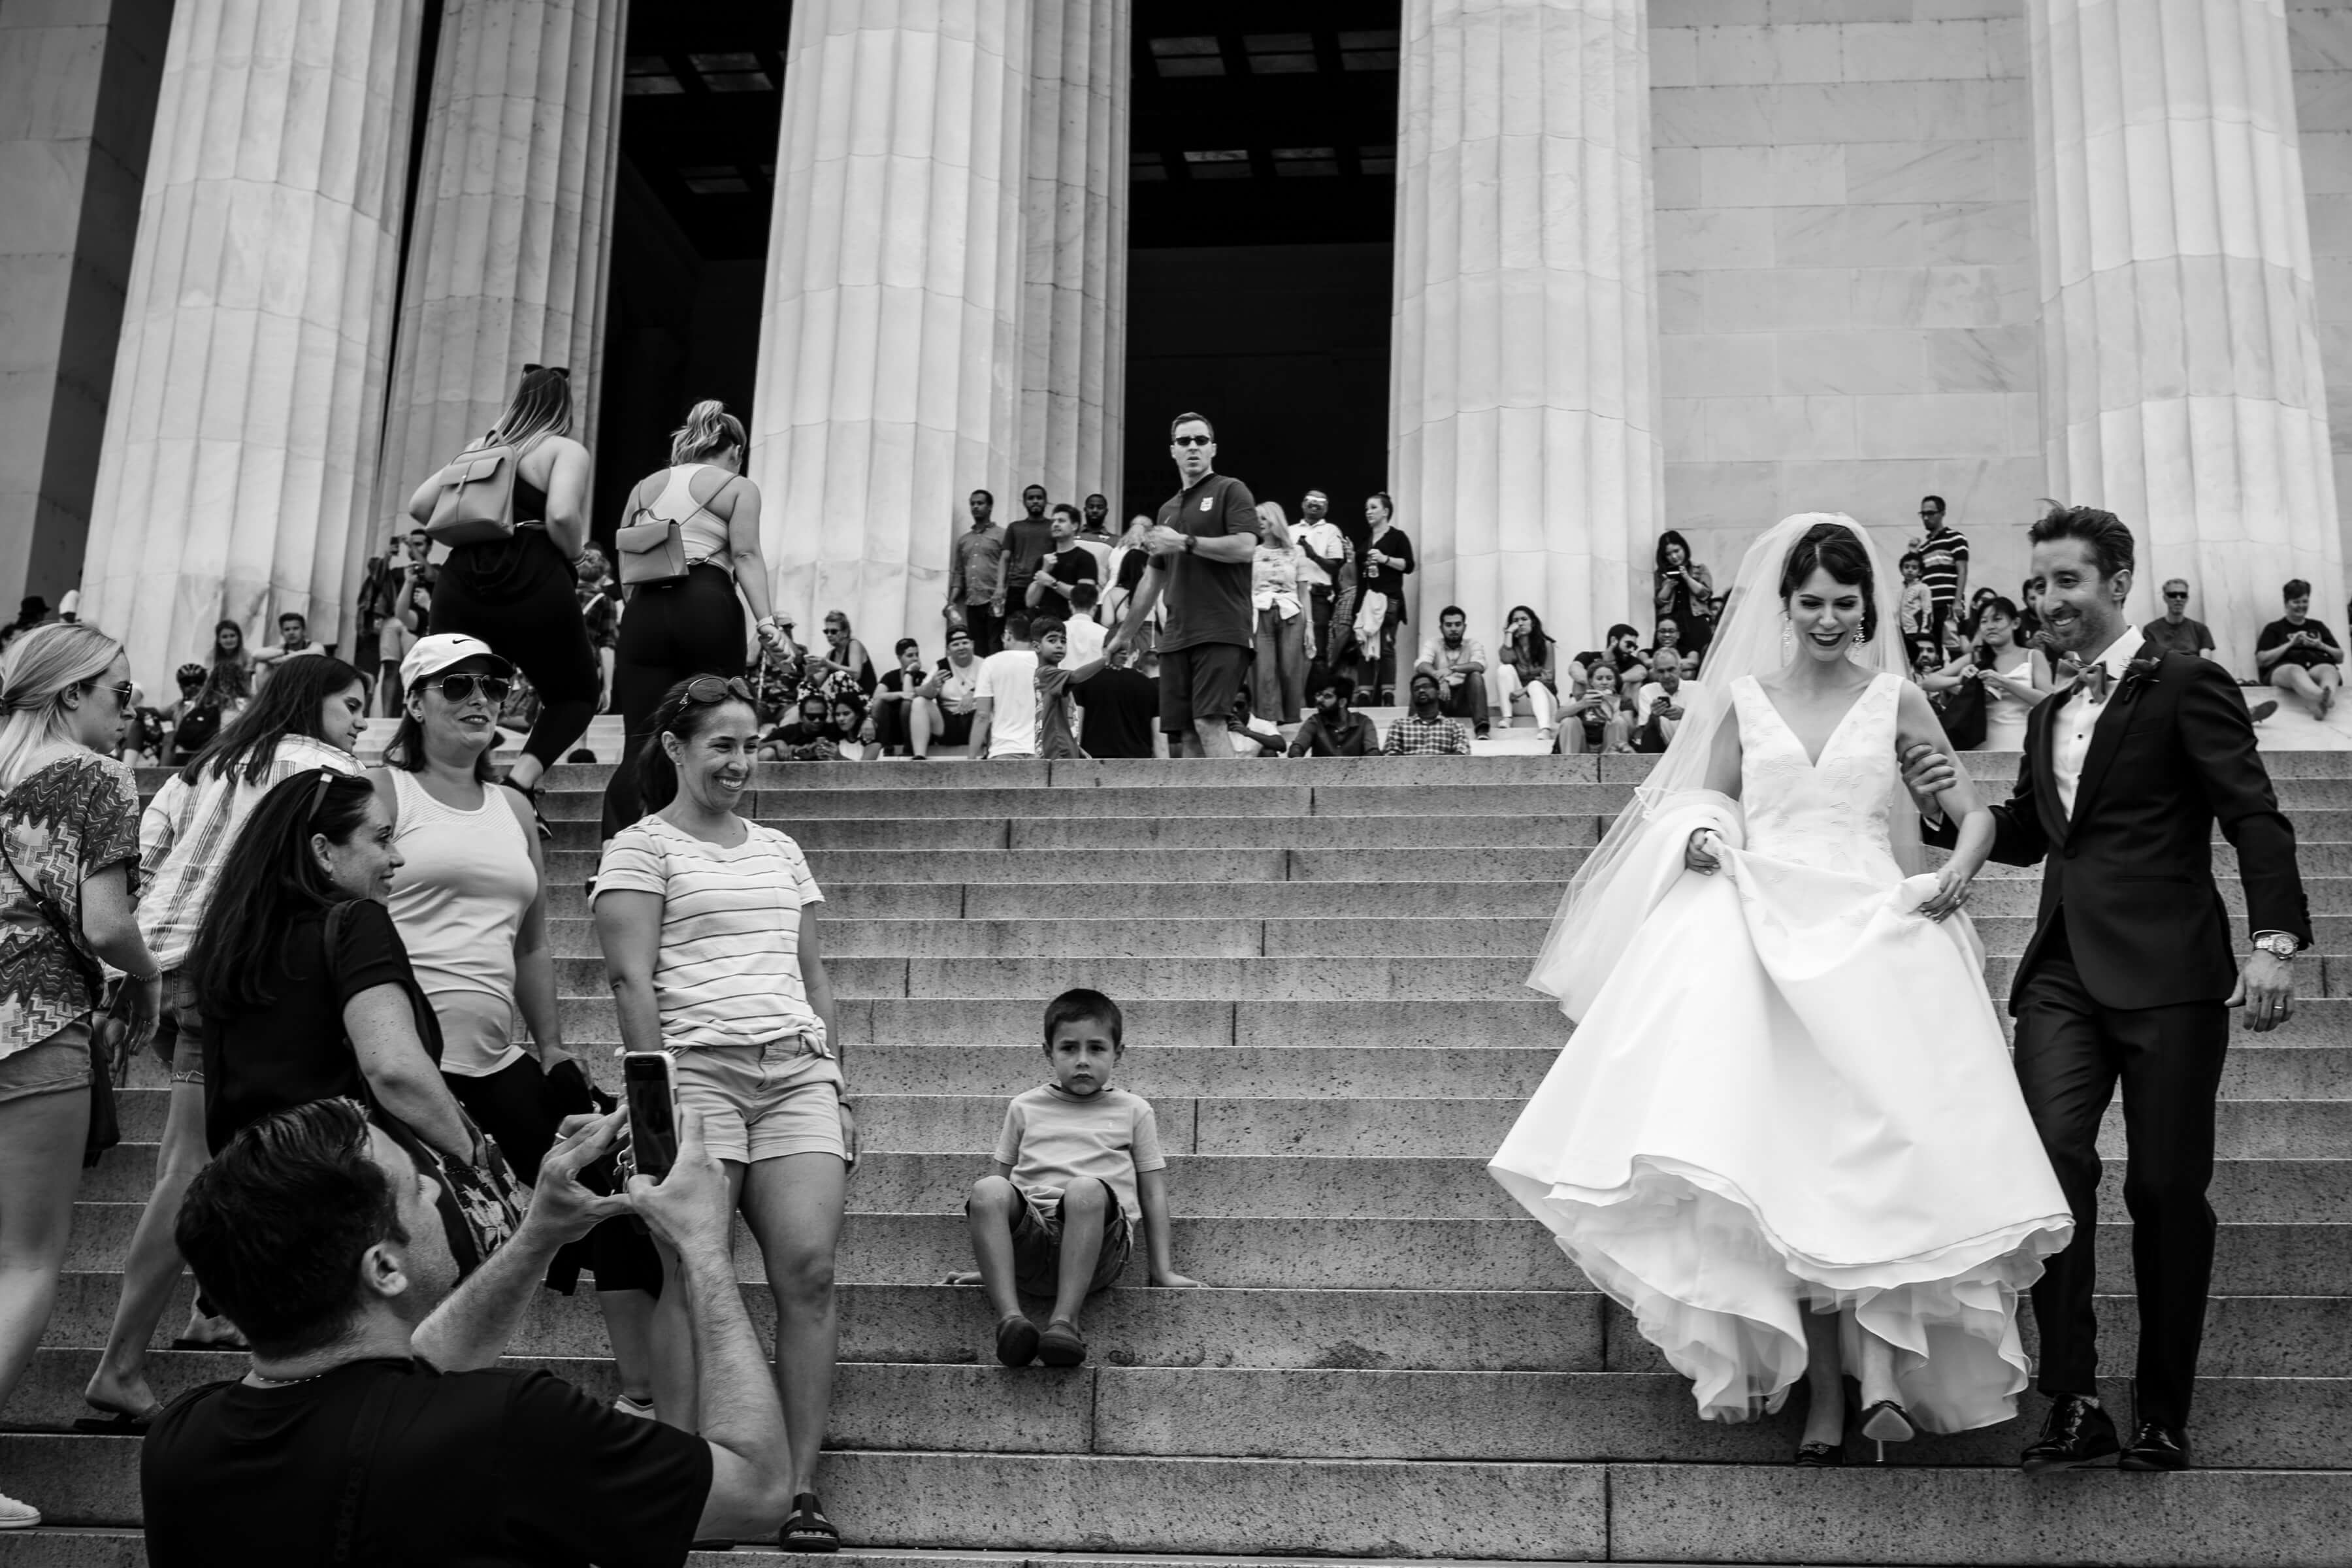 Couple descending iconic steps against onlookers - photo by Bee Two Sweet